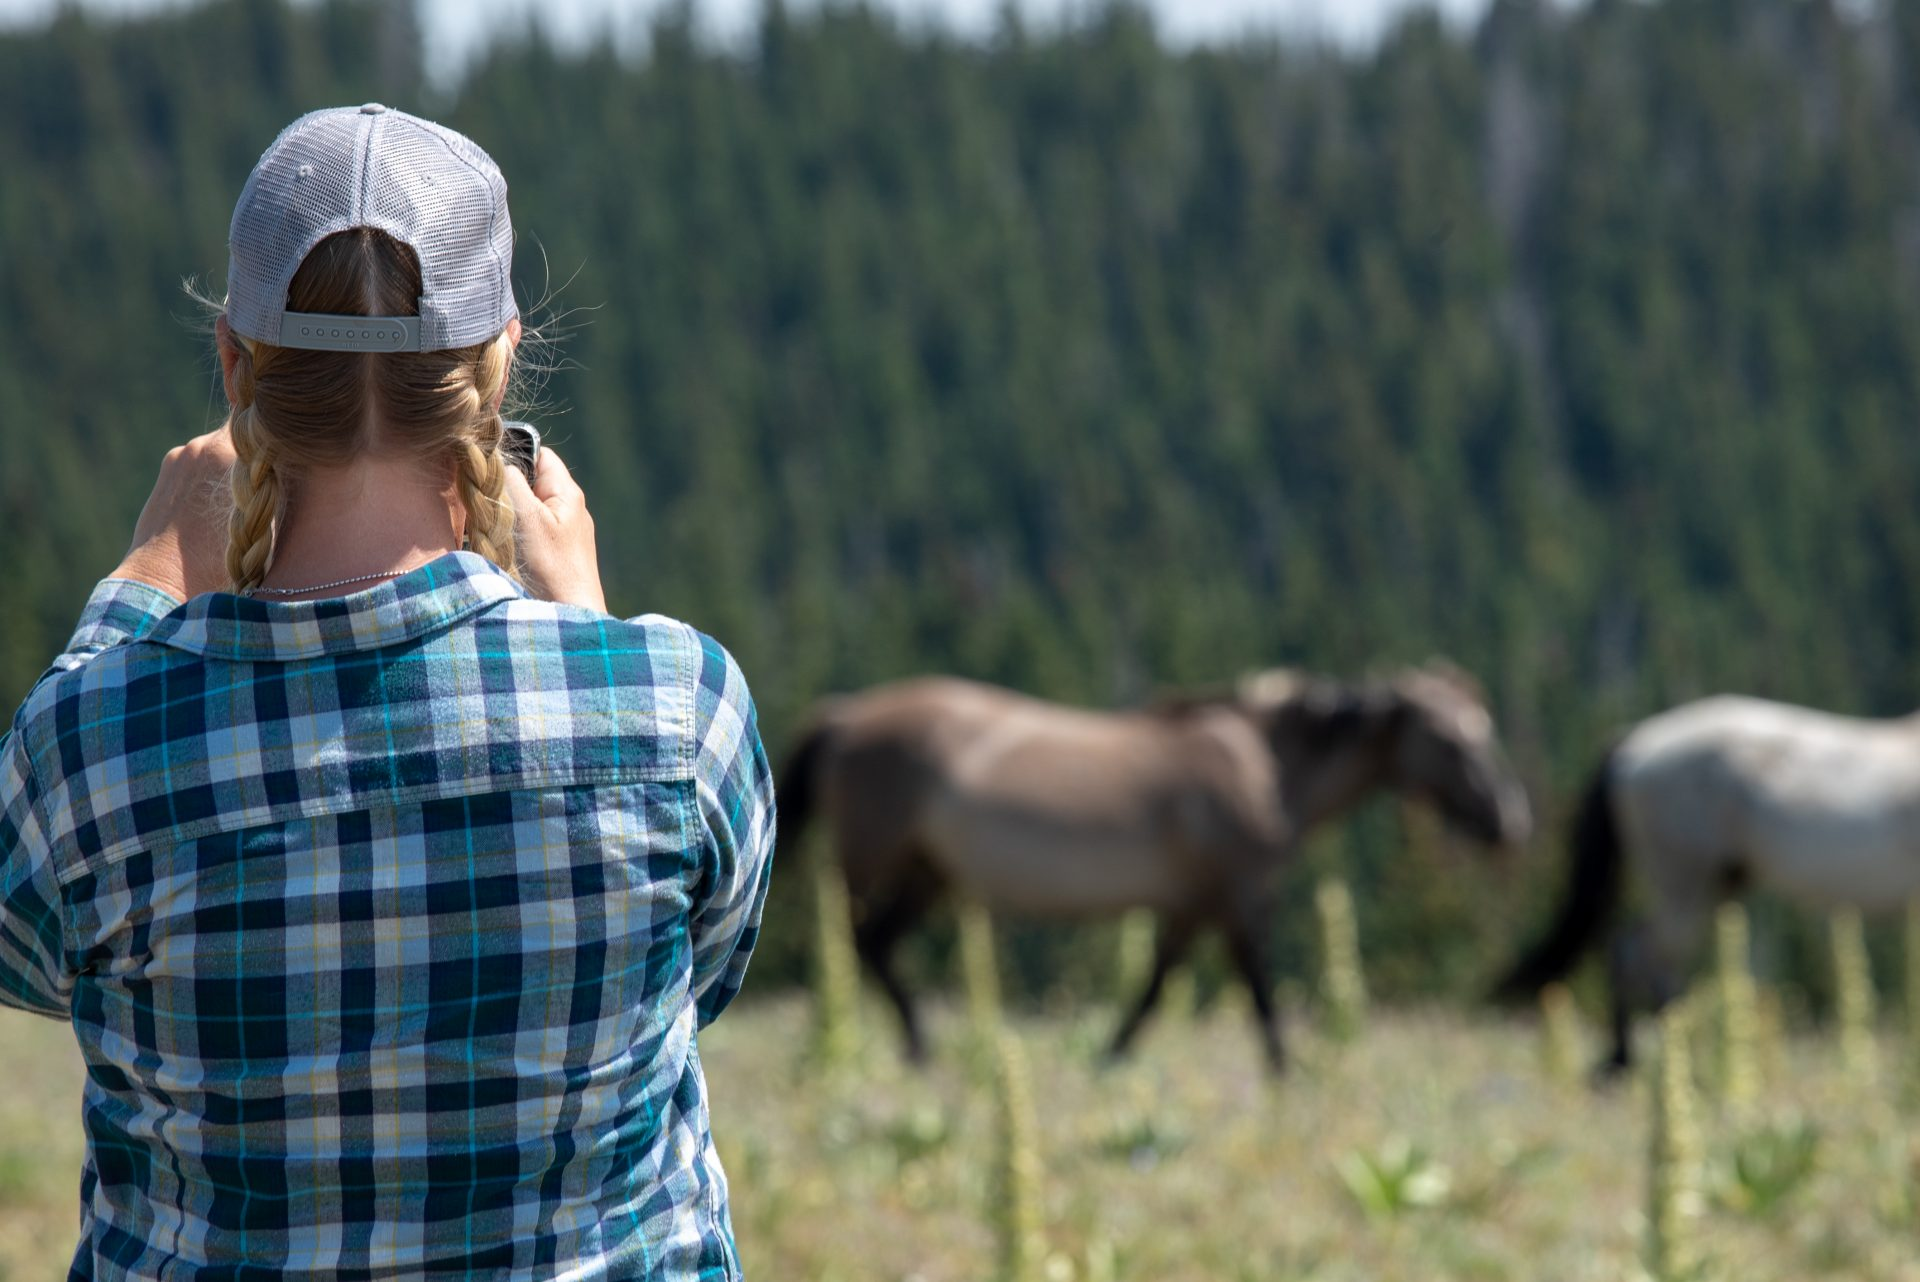 Watching wild horses in Montana